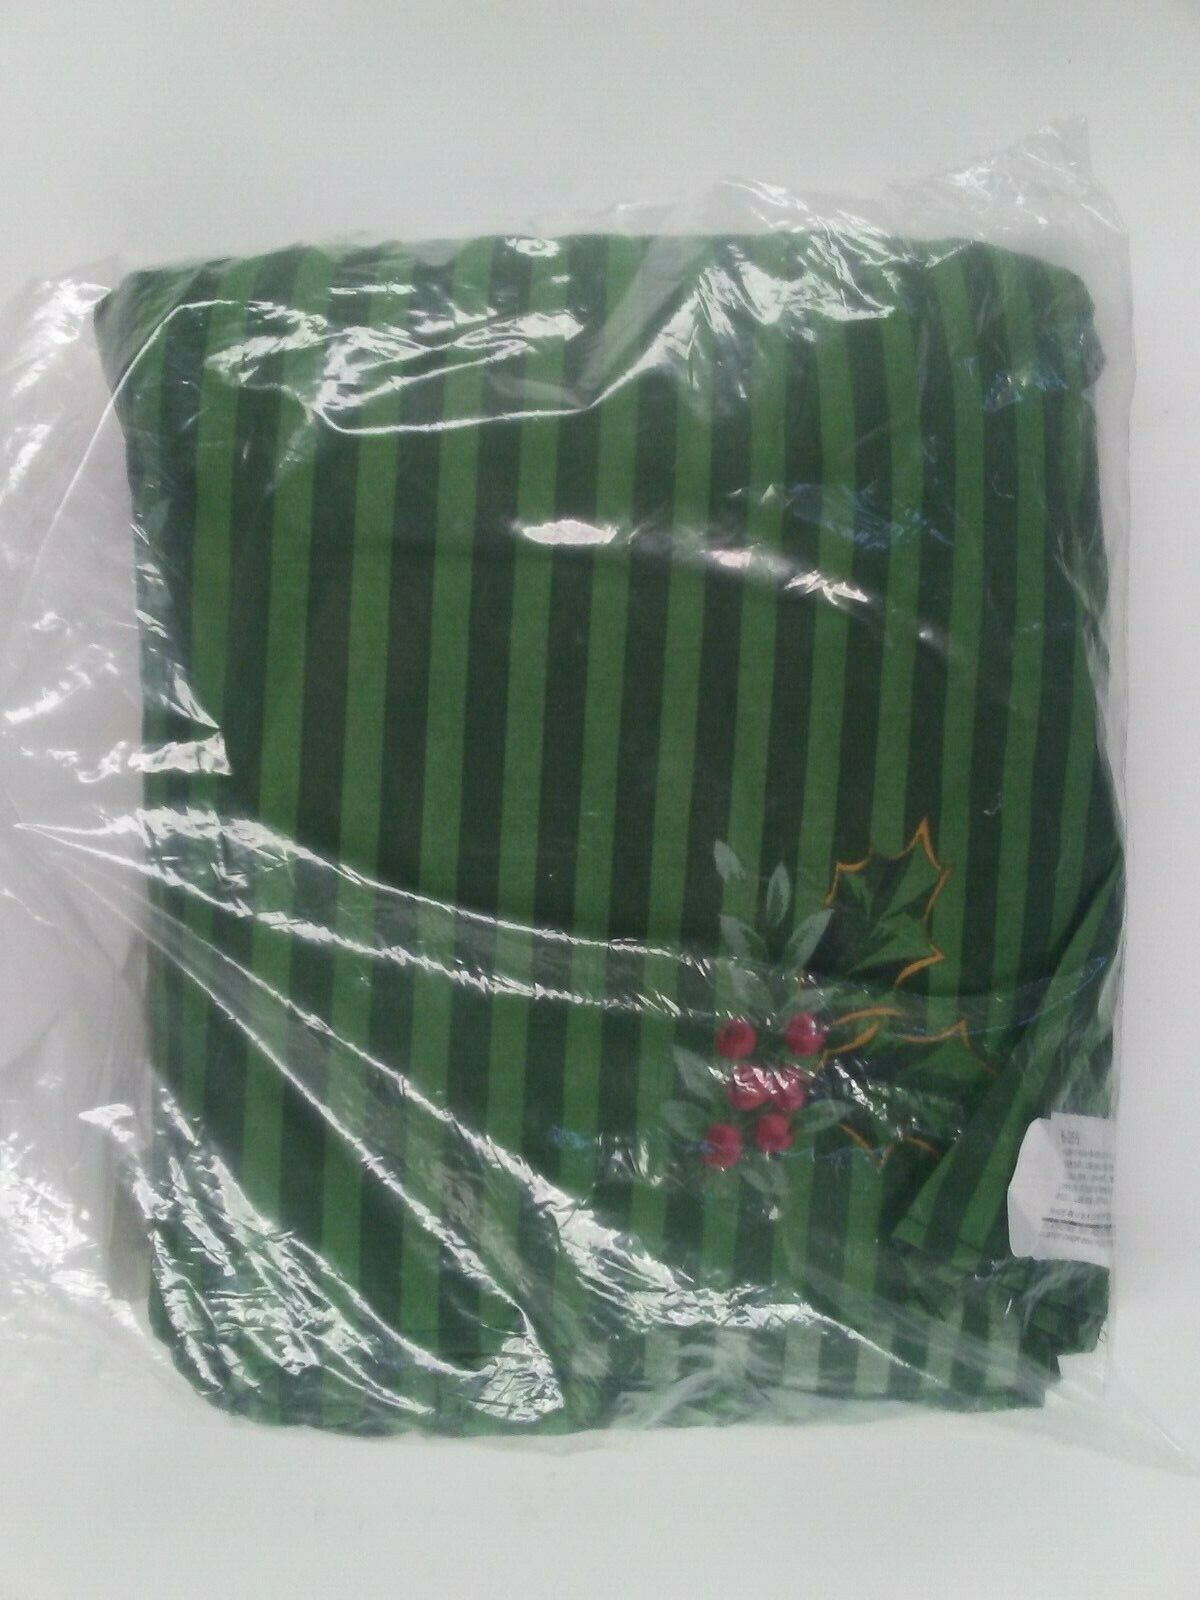 King Bed Skirt Dust Ruffle Cotton Holiday Pattern Royal Poinsettia on Green